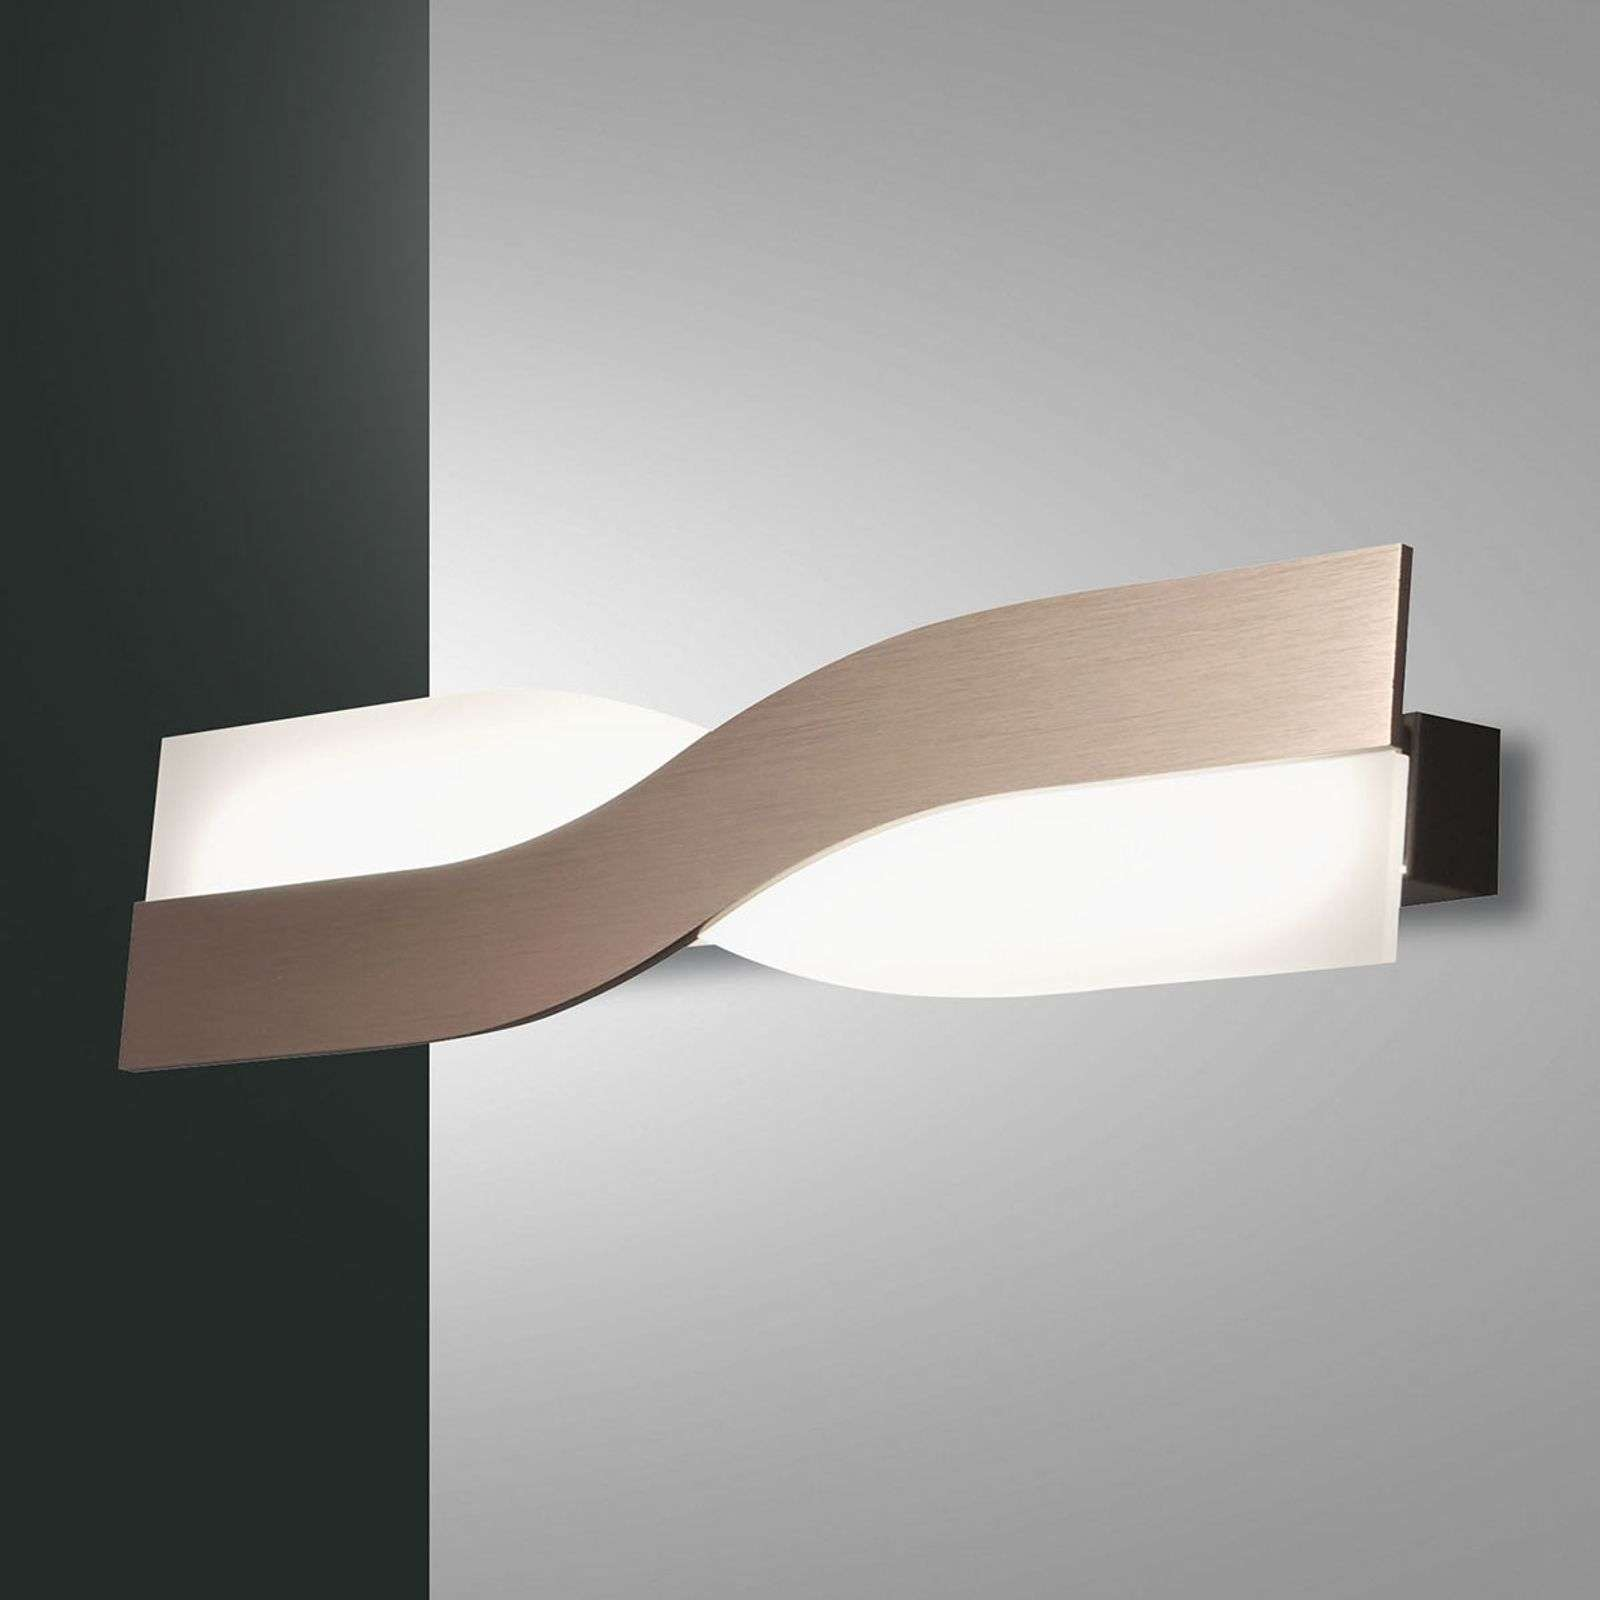 Belle applique murale LED Riace 50 cm bronze